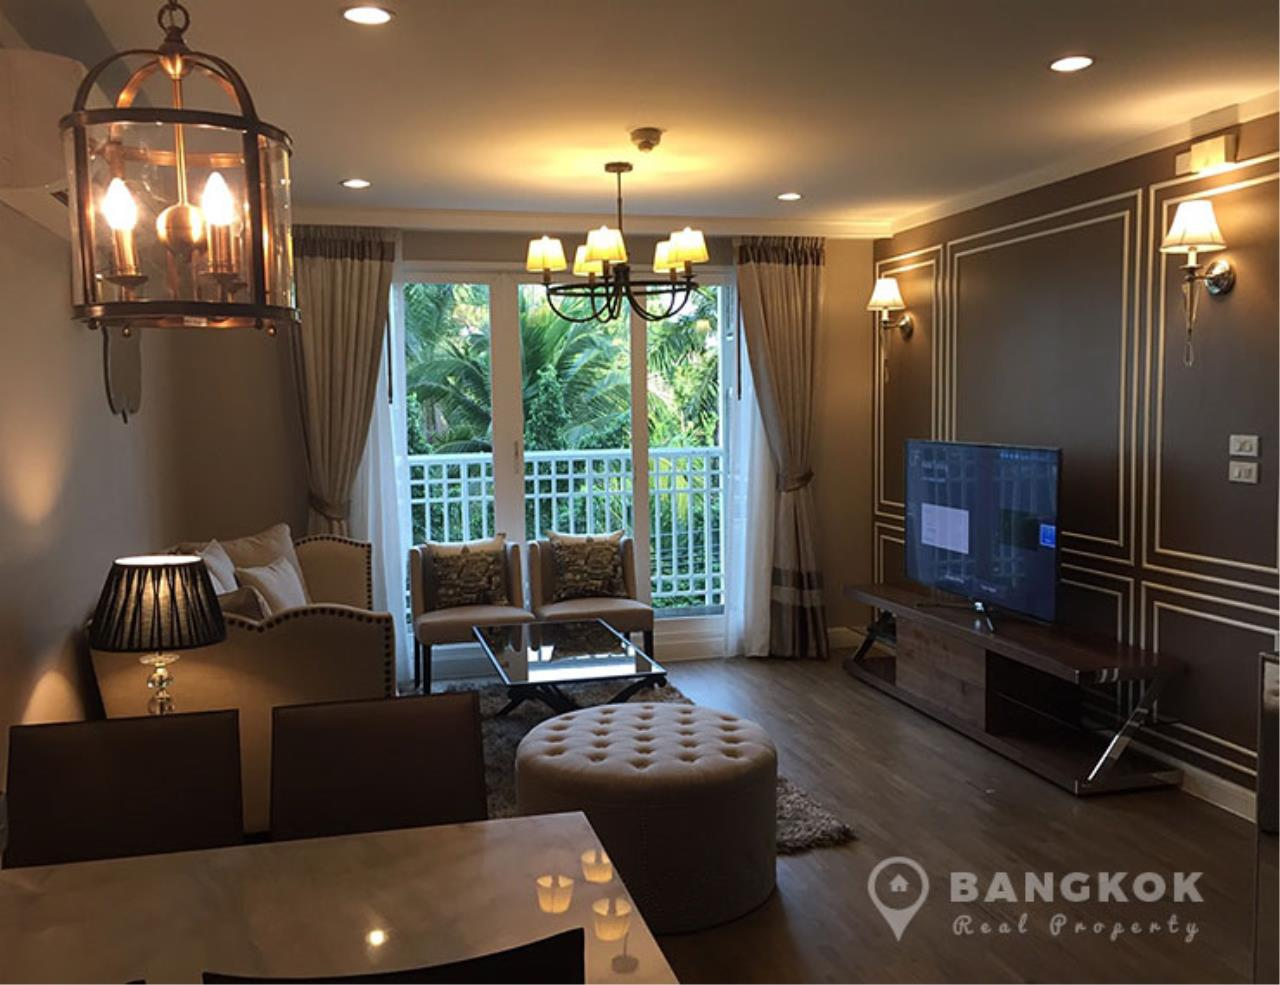 Bangkok Real Property Agency's Baan Siri Yenakard | Spacious Renovated 2 Bed 2 Bath near MRT  4